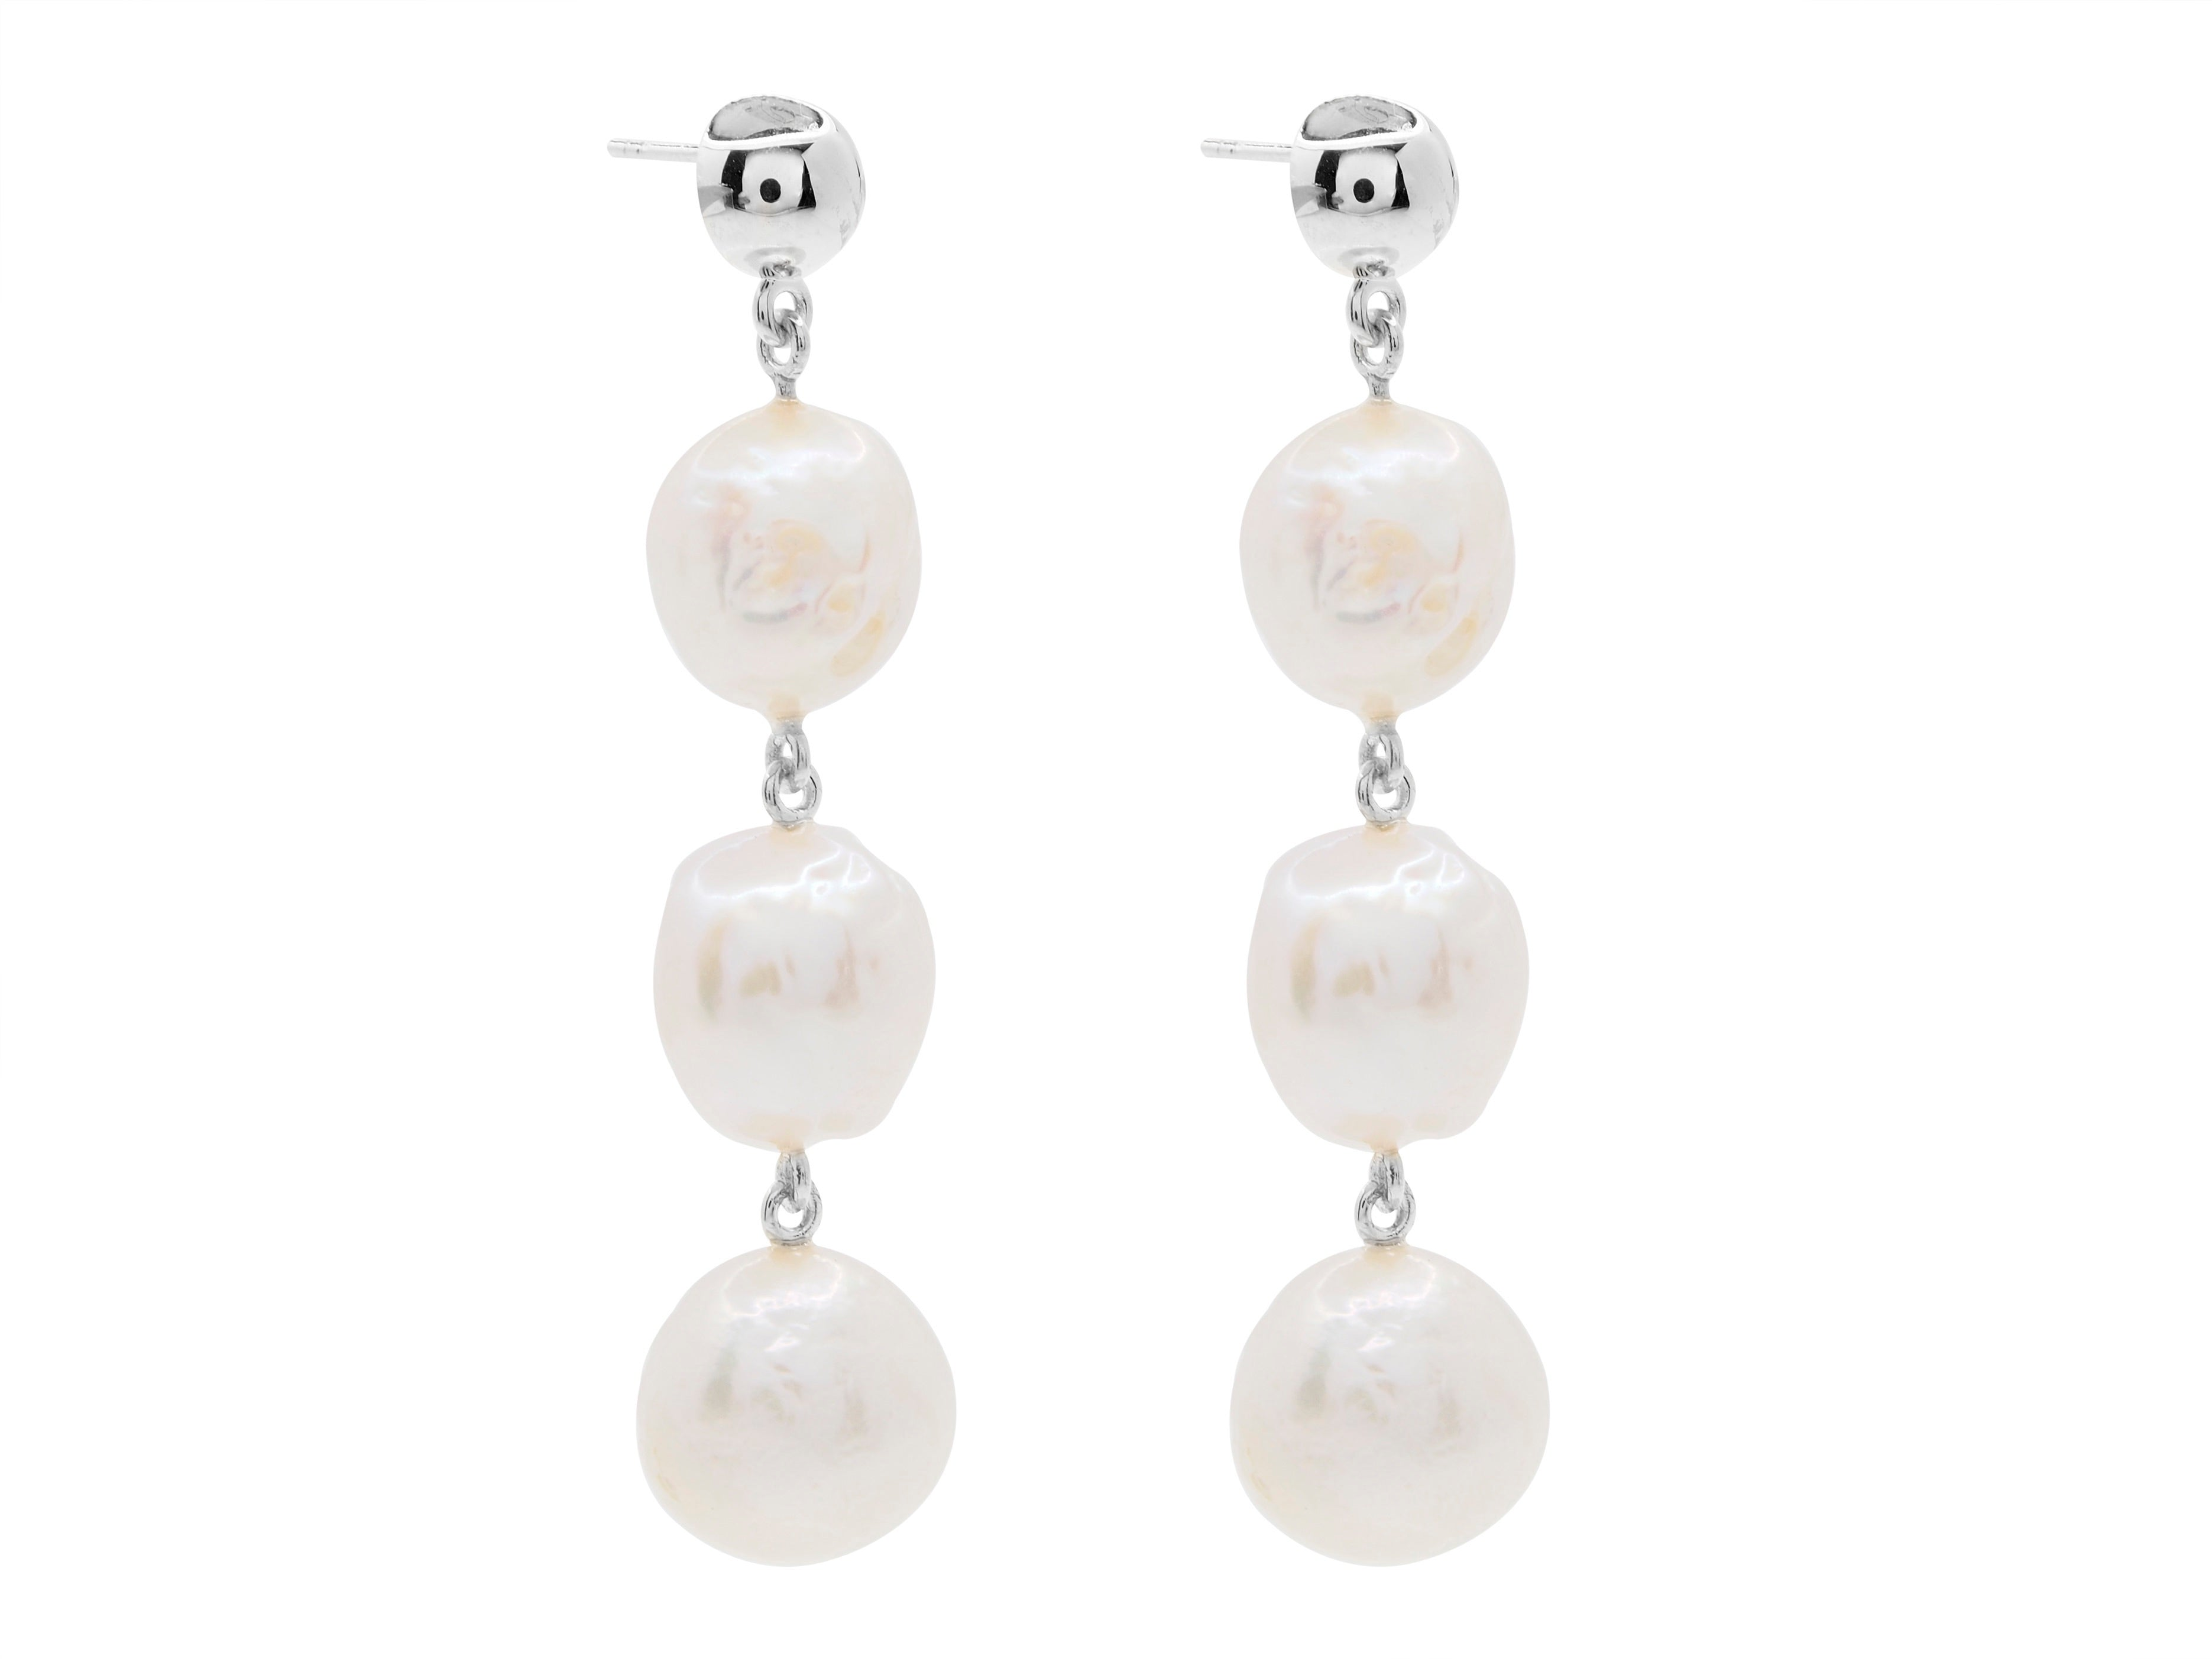 Cape Leveque baroque pearl drop earrings, sterling silver, rhodium plated